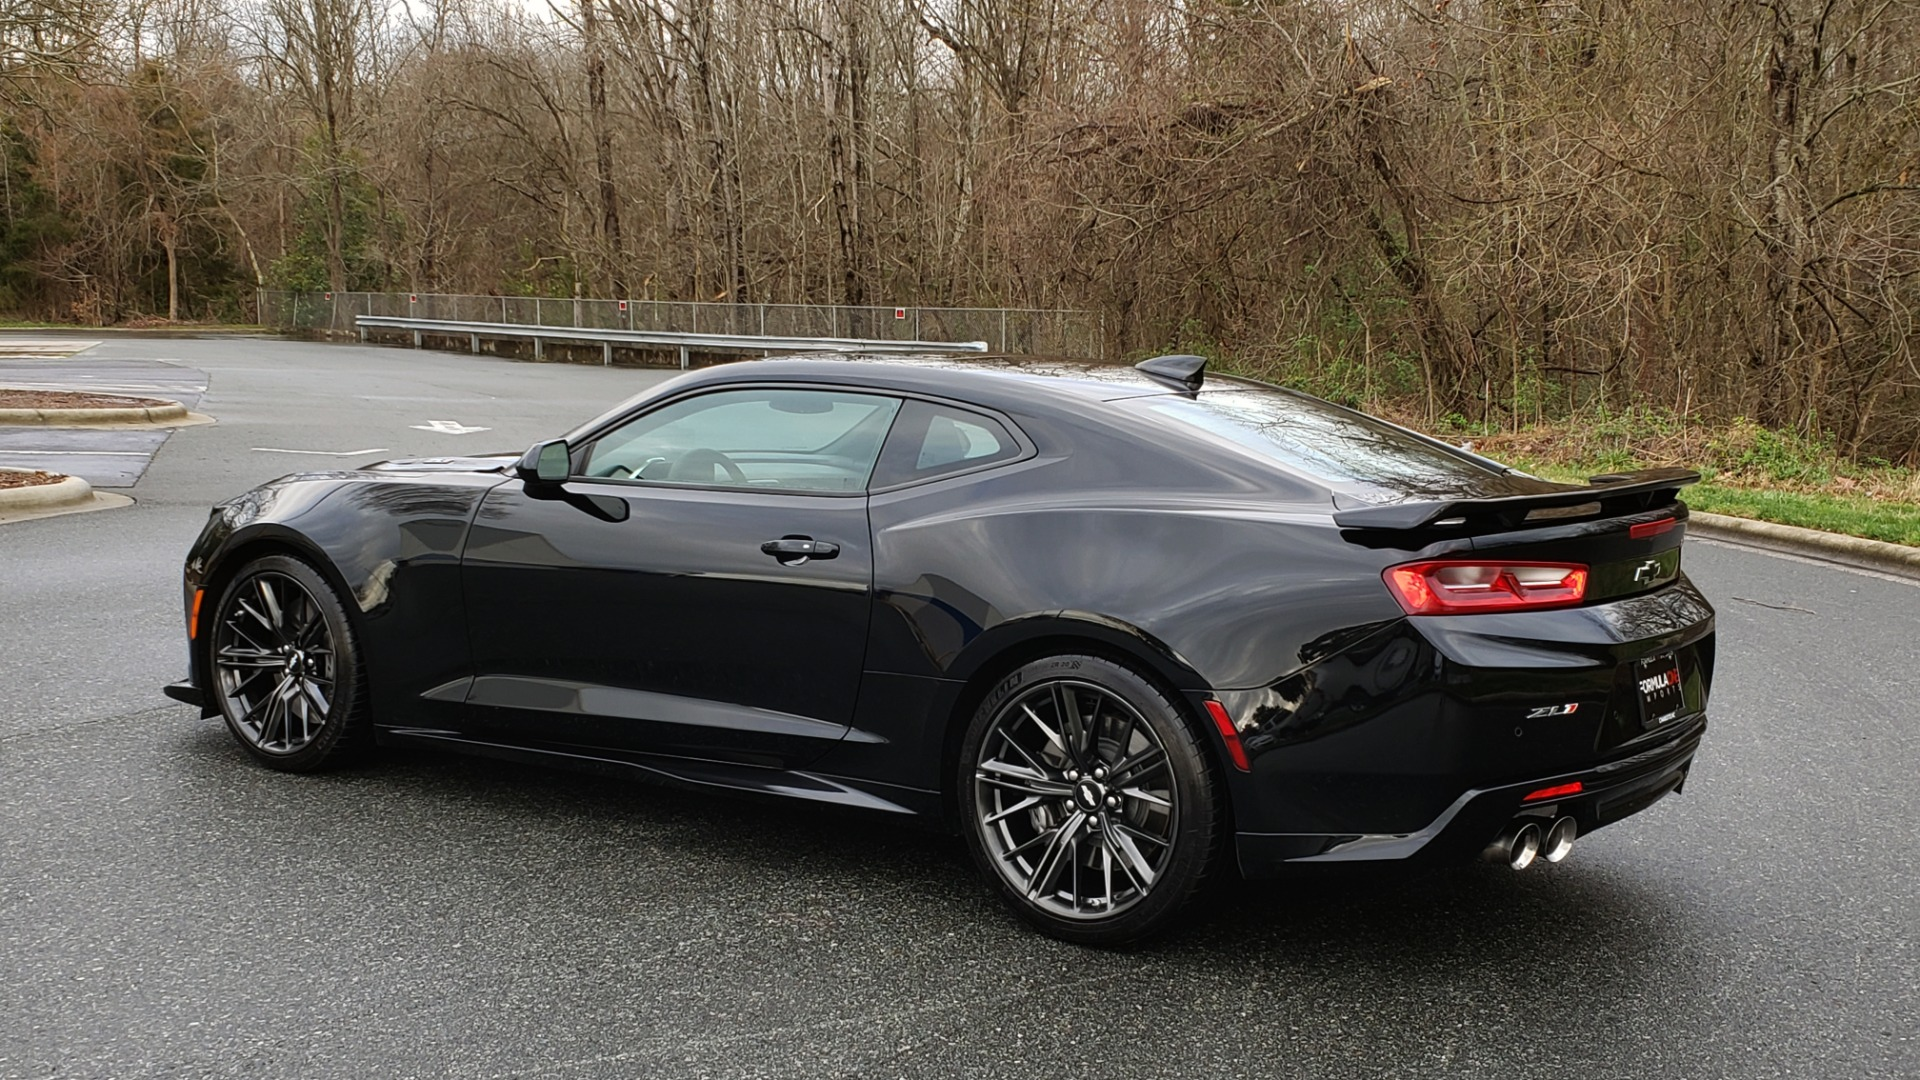 Used 2018 Chevrolet CAMARO ZL1 6.2L SUPERCHARGED V8 650 / NAV / SUNROOF / REARVIEW for sale Sold at Formula Imports in Charlotte NC 28227 4